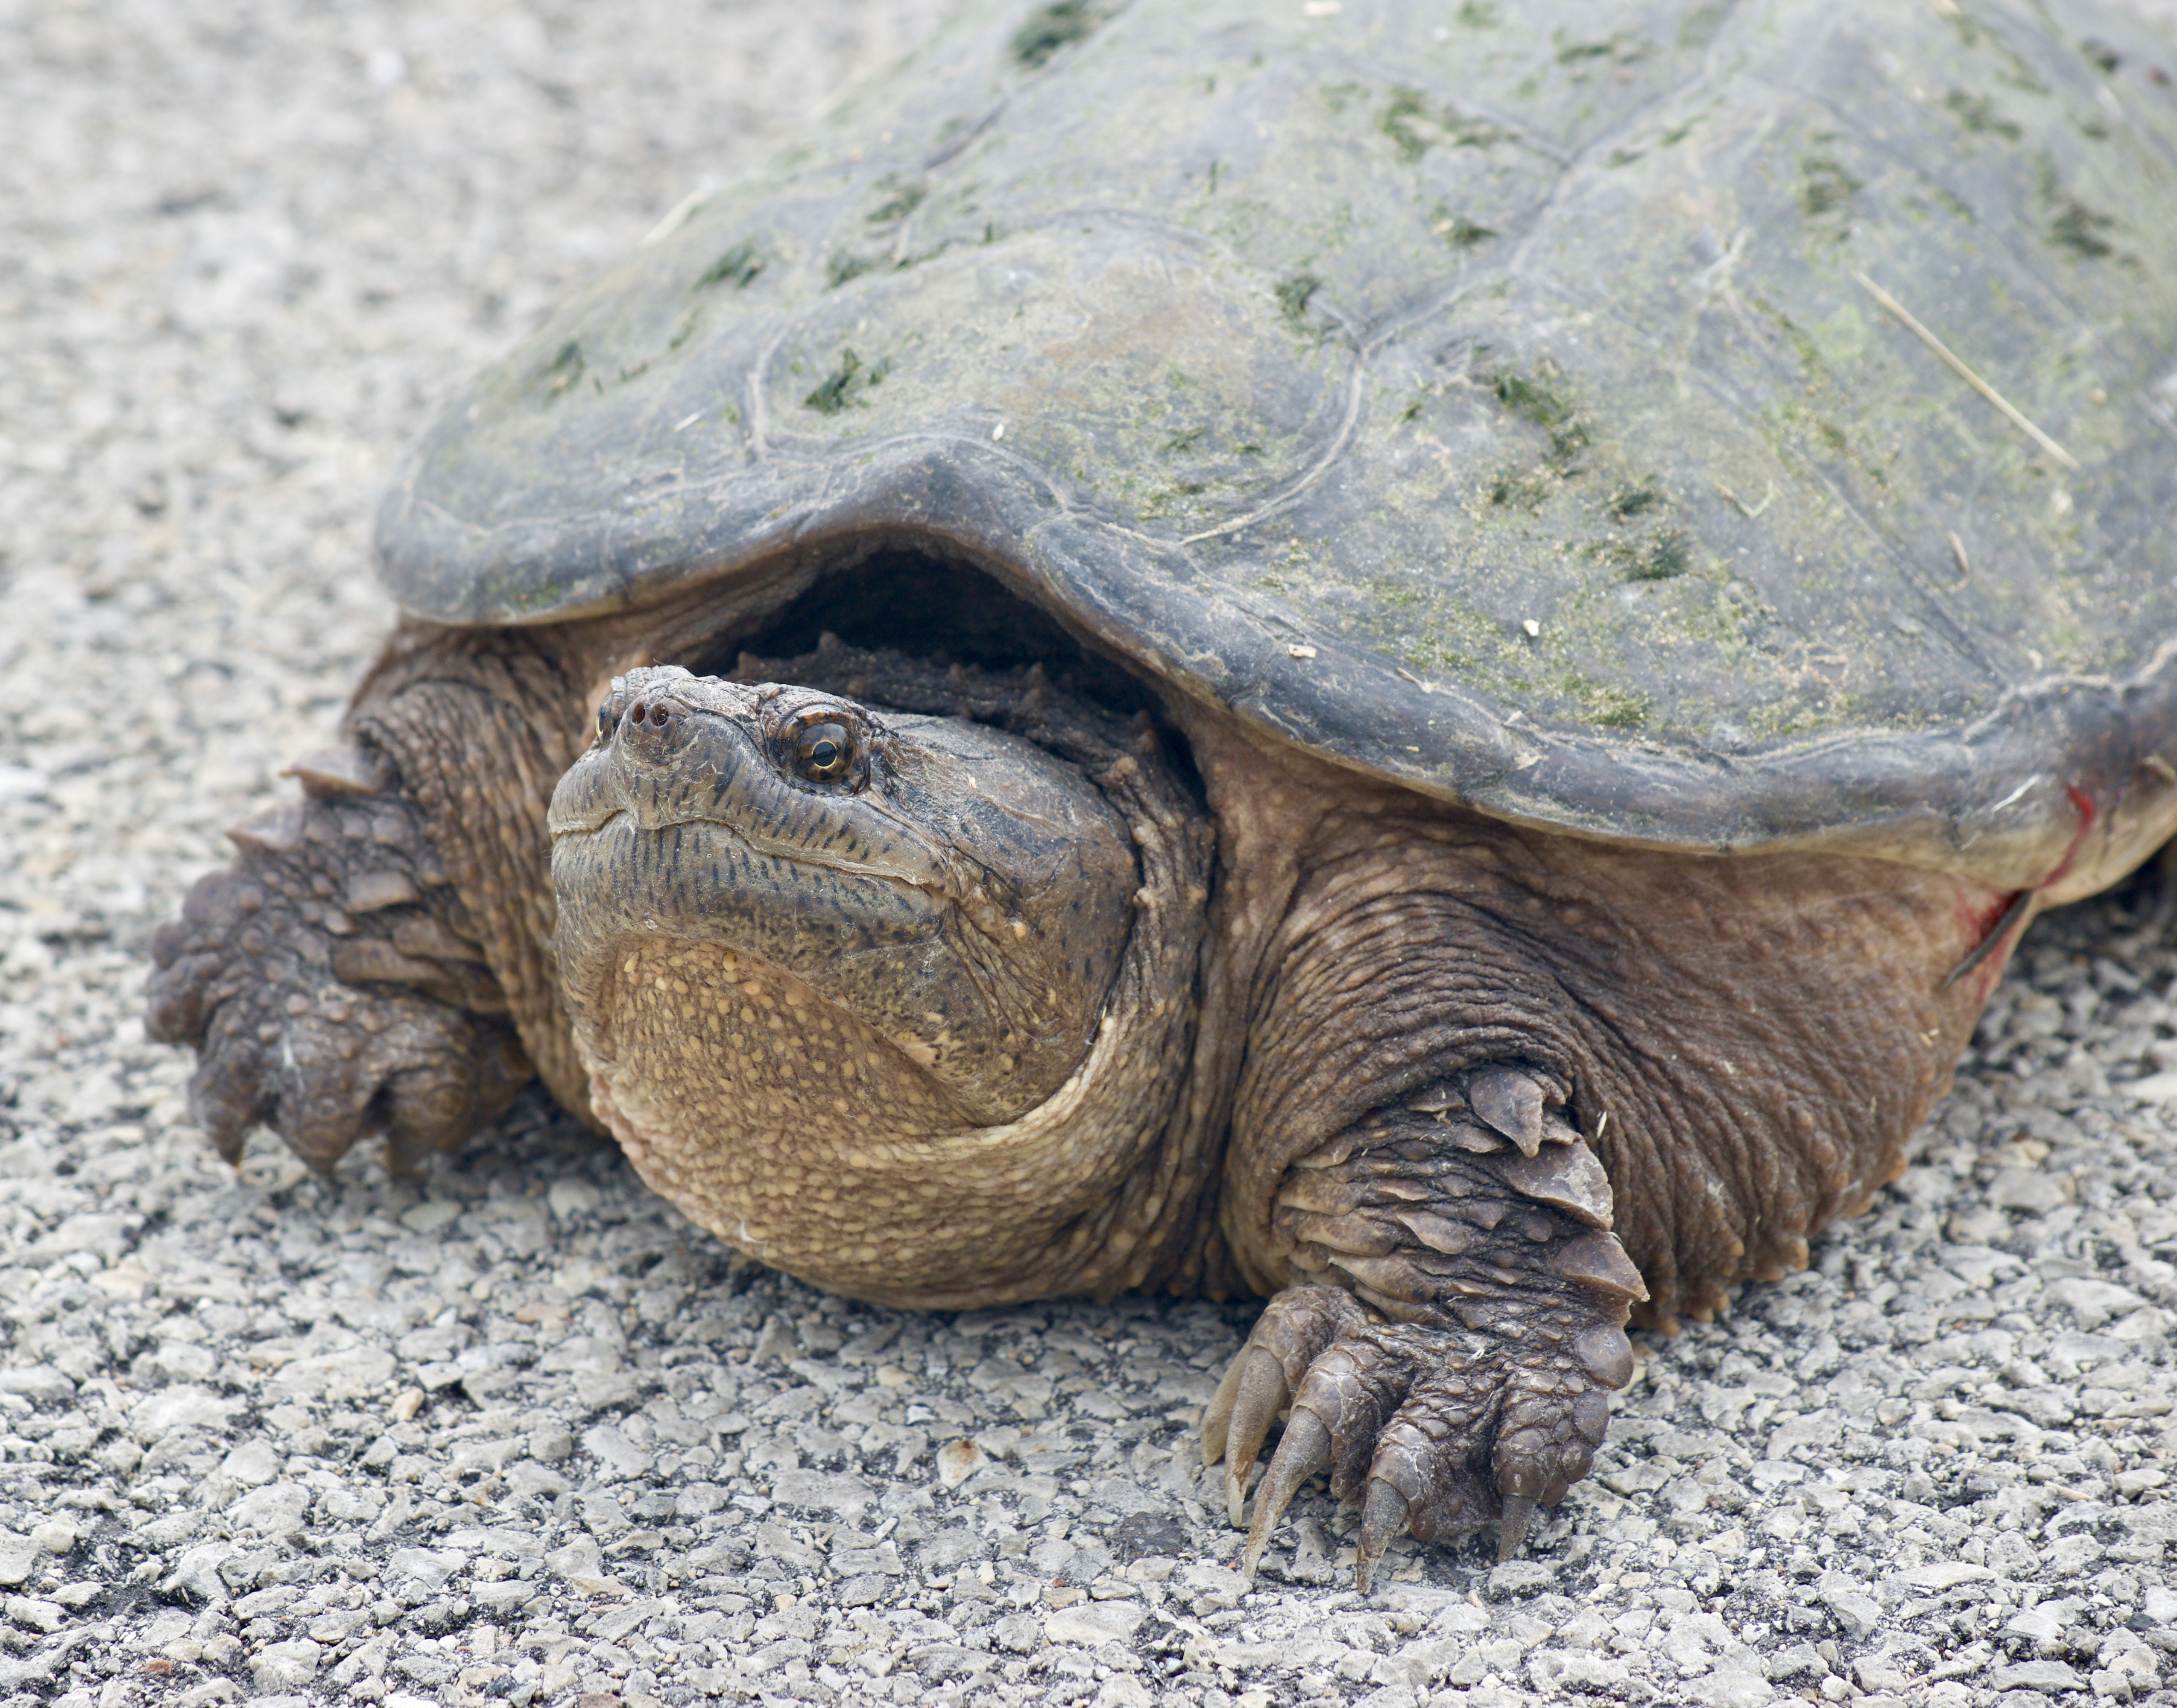 tortoise on concrete pavement